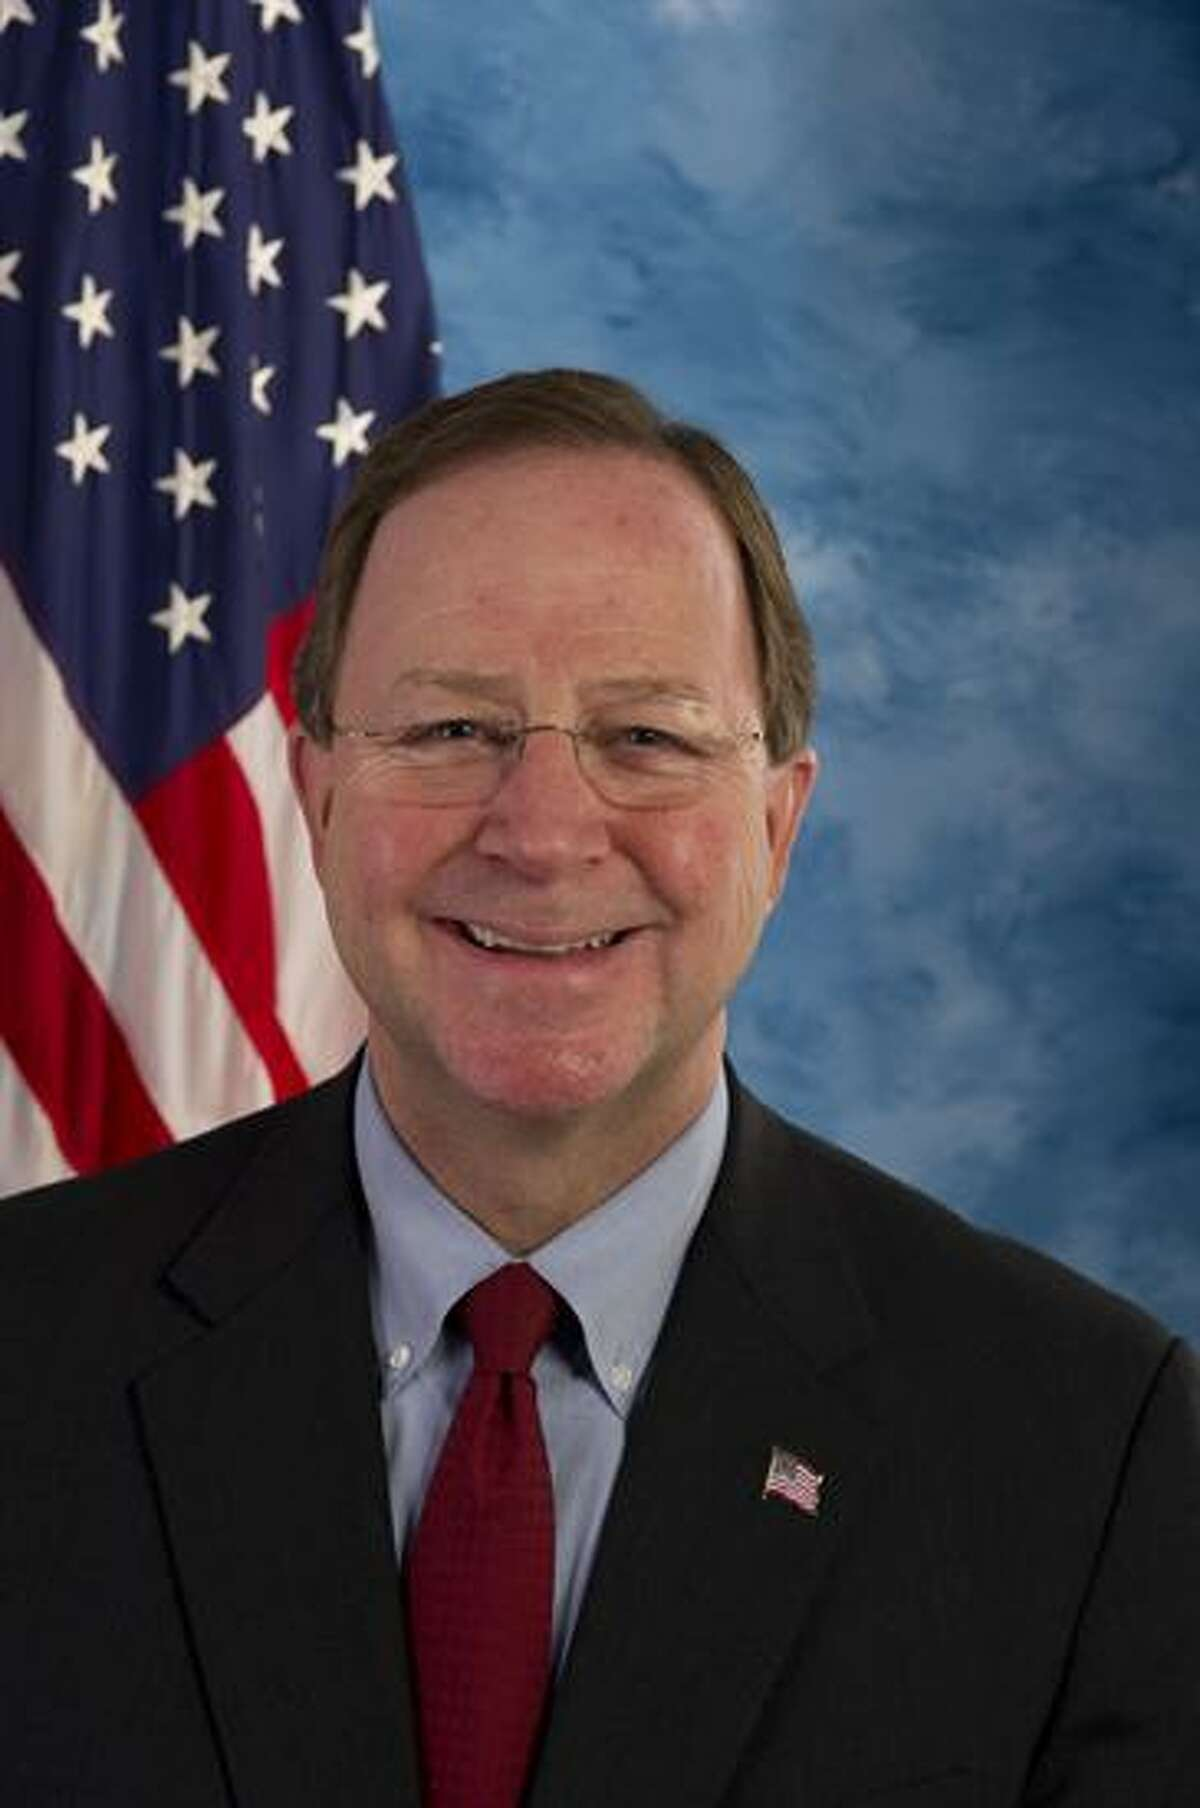 U.S. Rep. Bill Flores (R-Texas) said riots in Baltimore are an example of what to expect if same-sex marriage were sanctioned across the states.